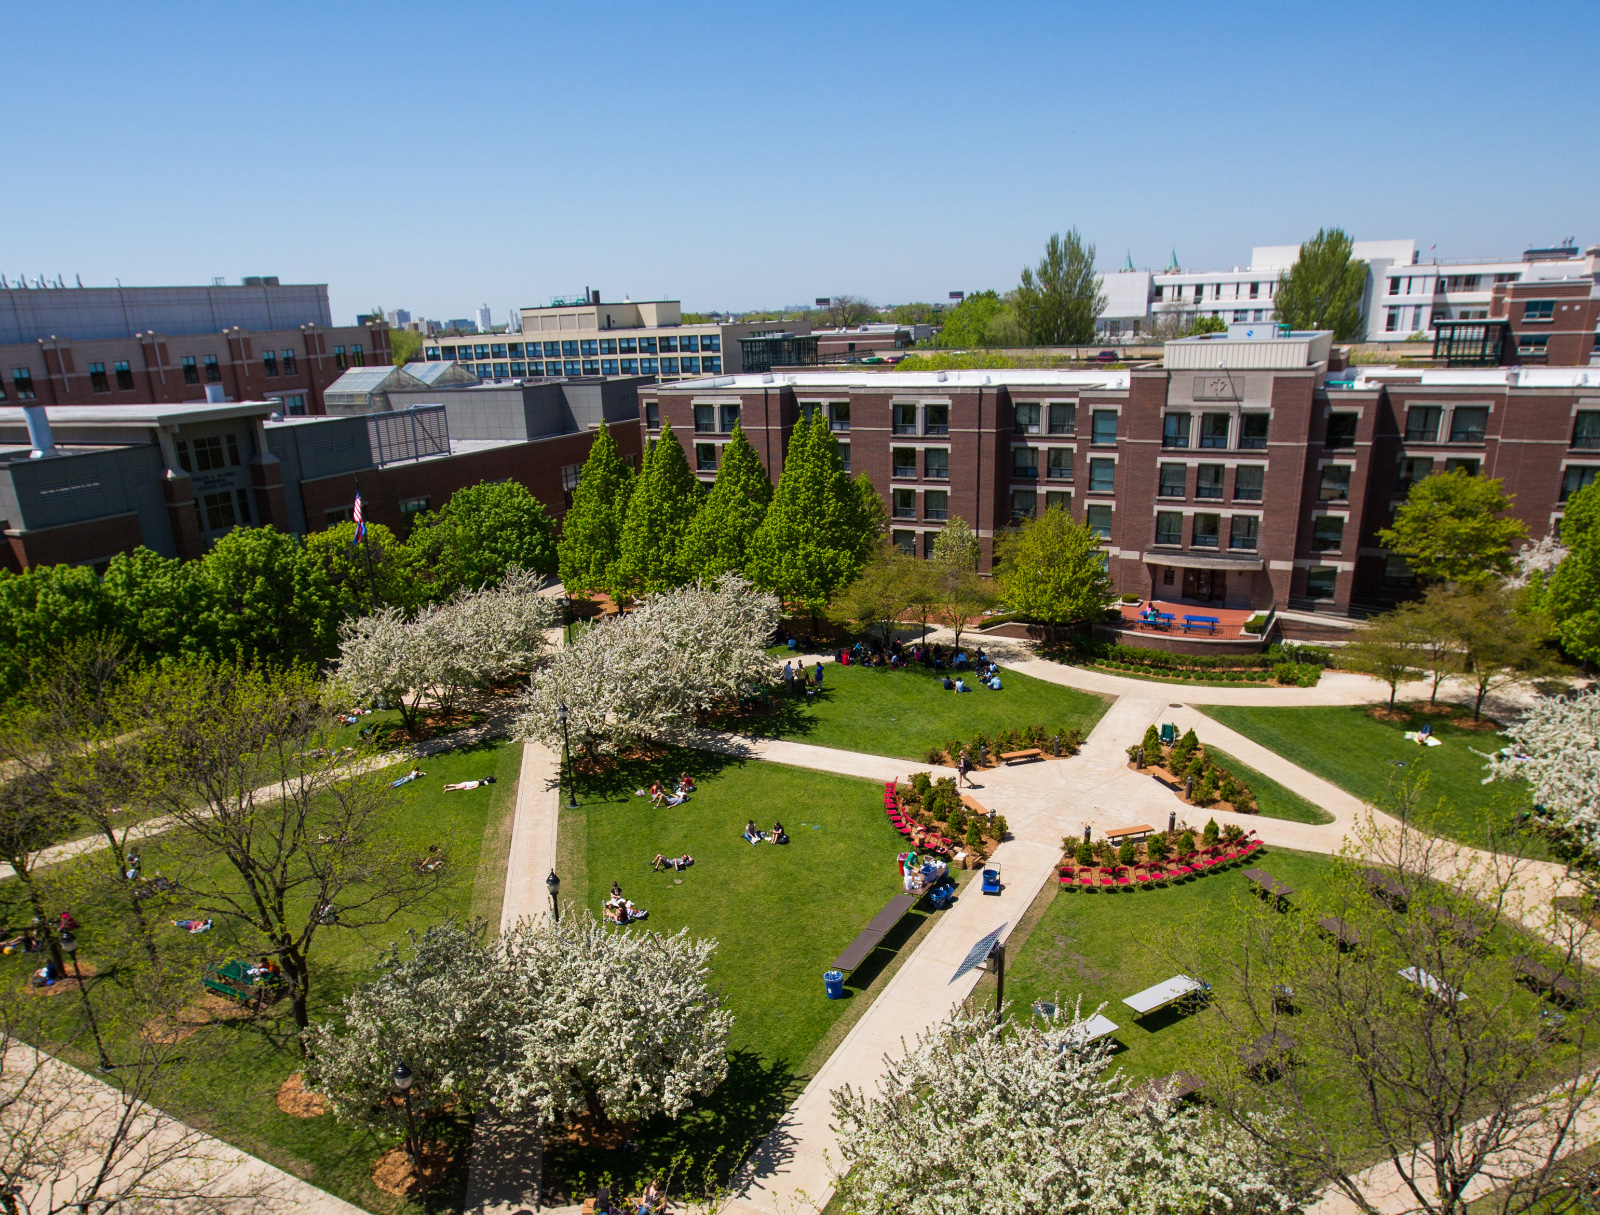 Health and Wellness Resources at DePaul University